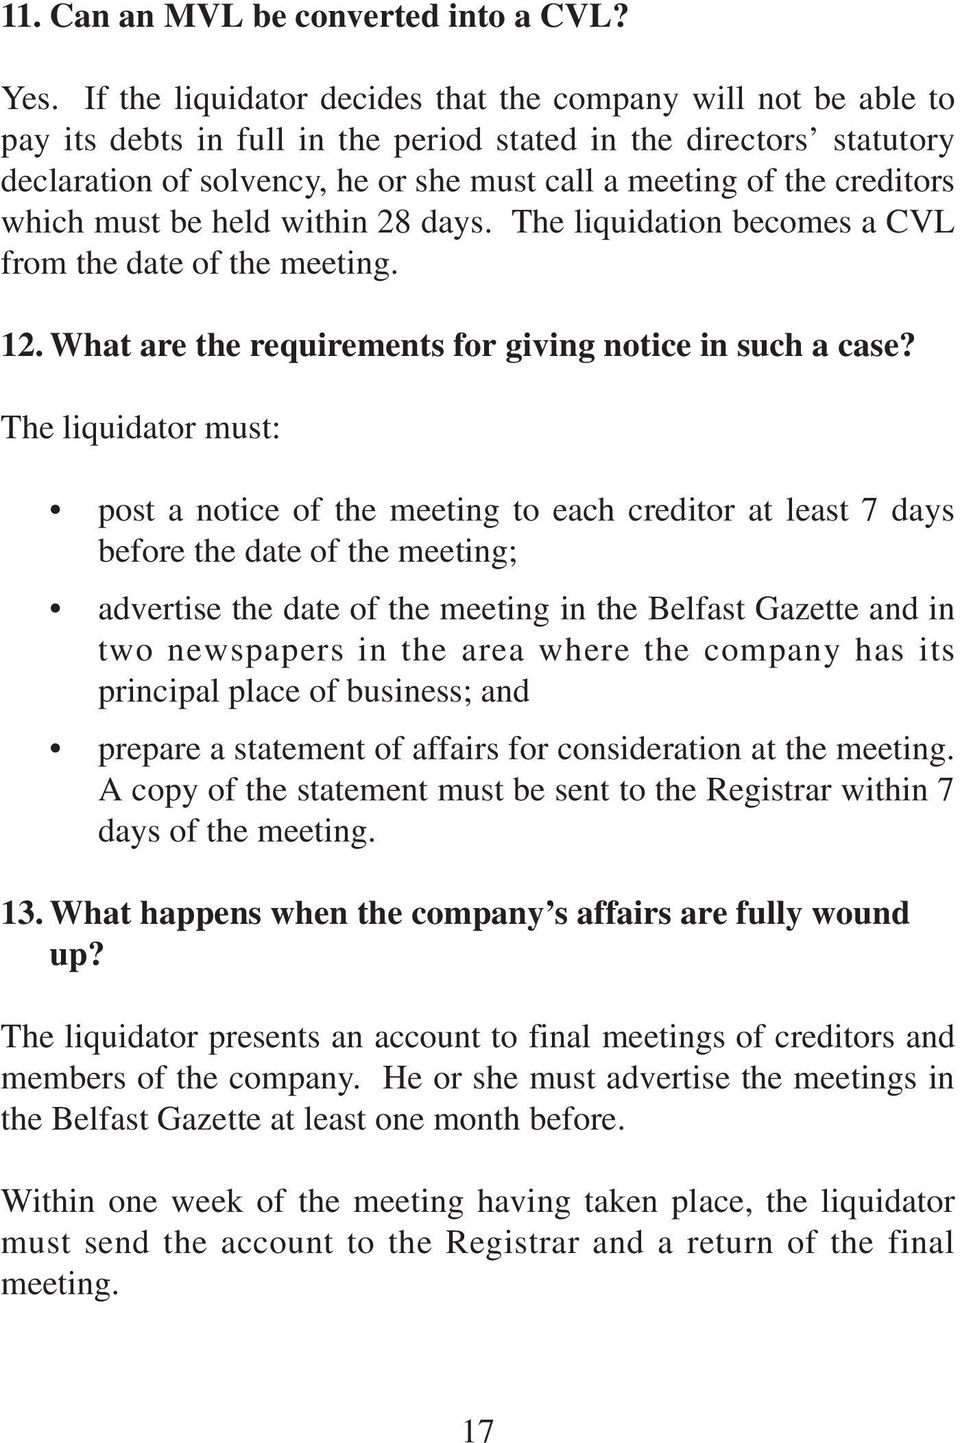 creditors which must be held within 28 days. The liquidation becomes a CVL from the date of the meeting. 12. What are the requirements for giving notice in such a case?